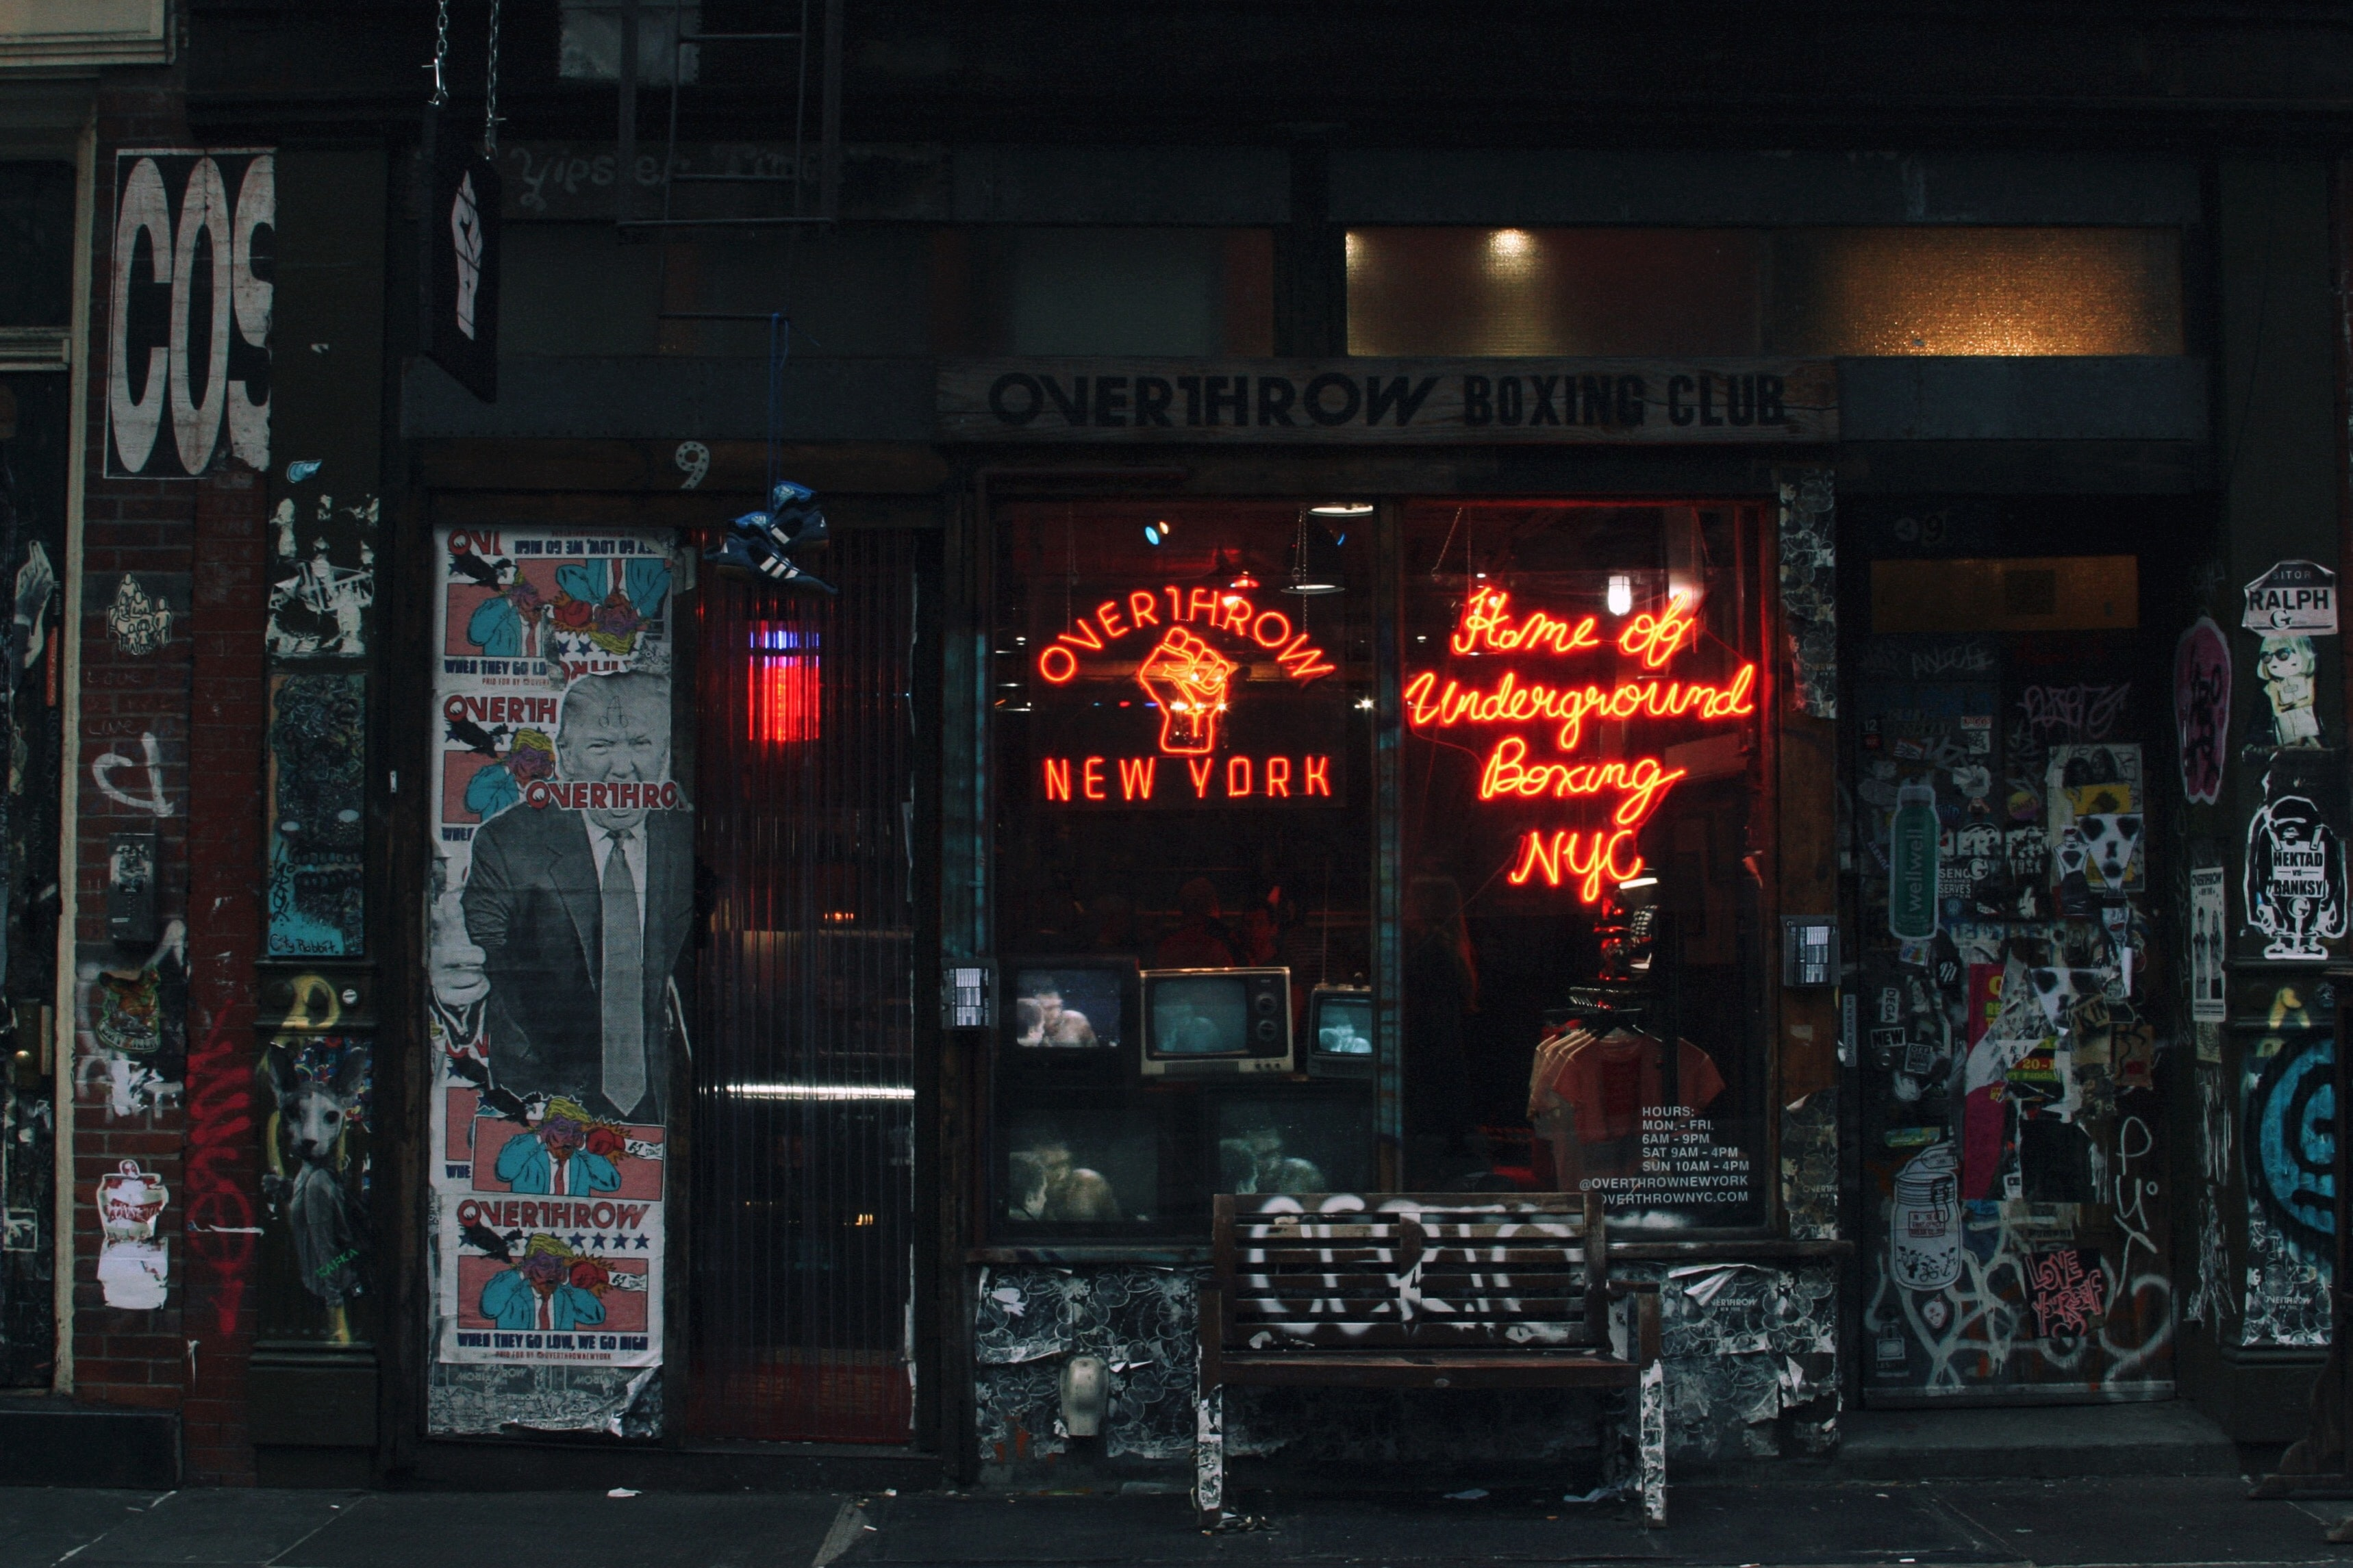 Overthrow boxing club with red neon sign and graffiti covered walls and bench in East Village